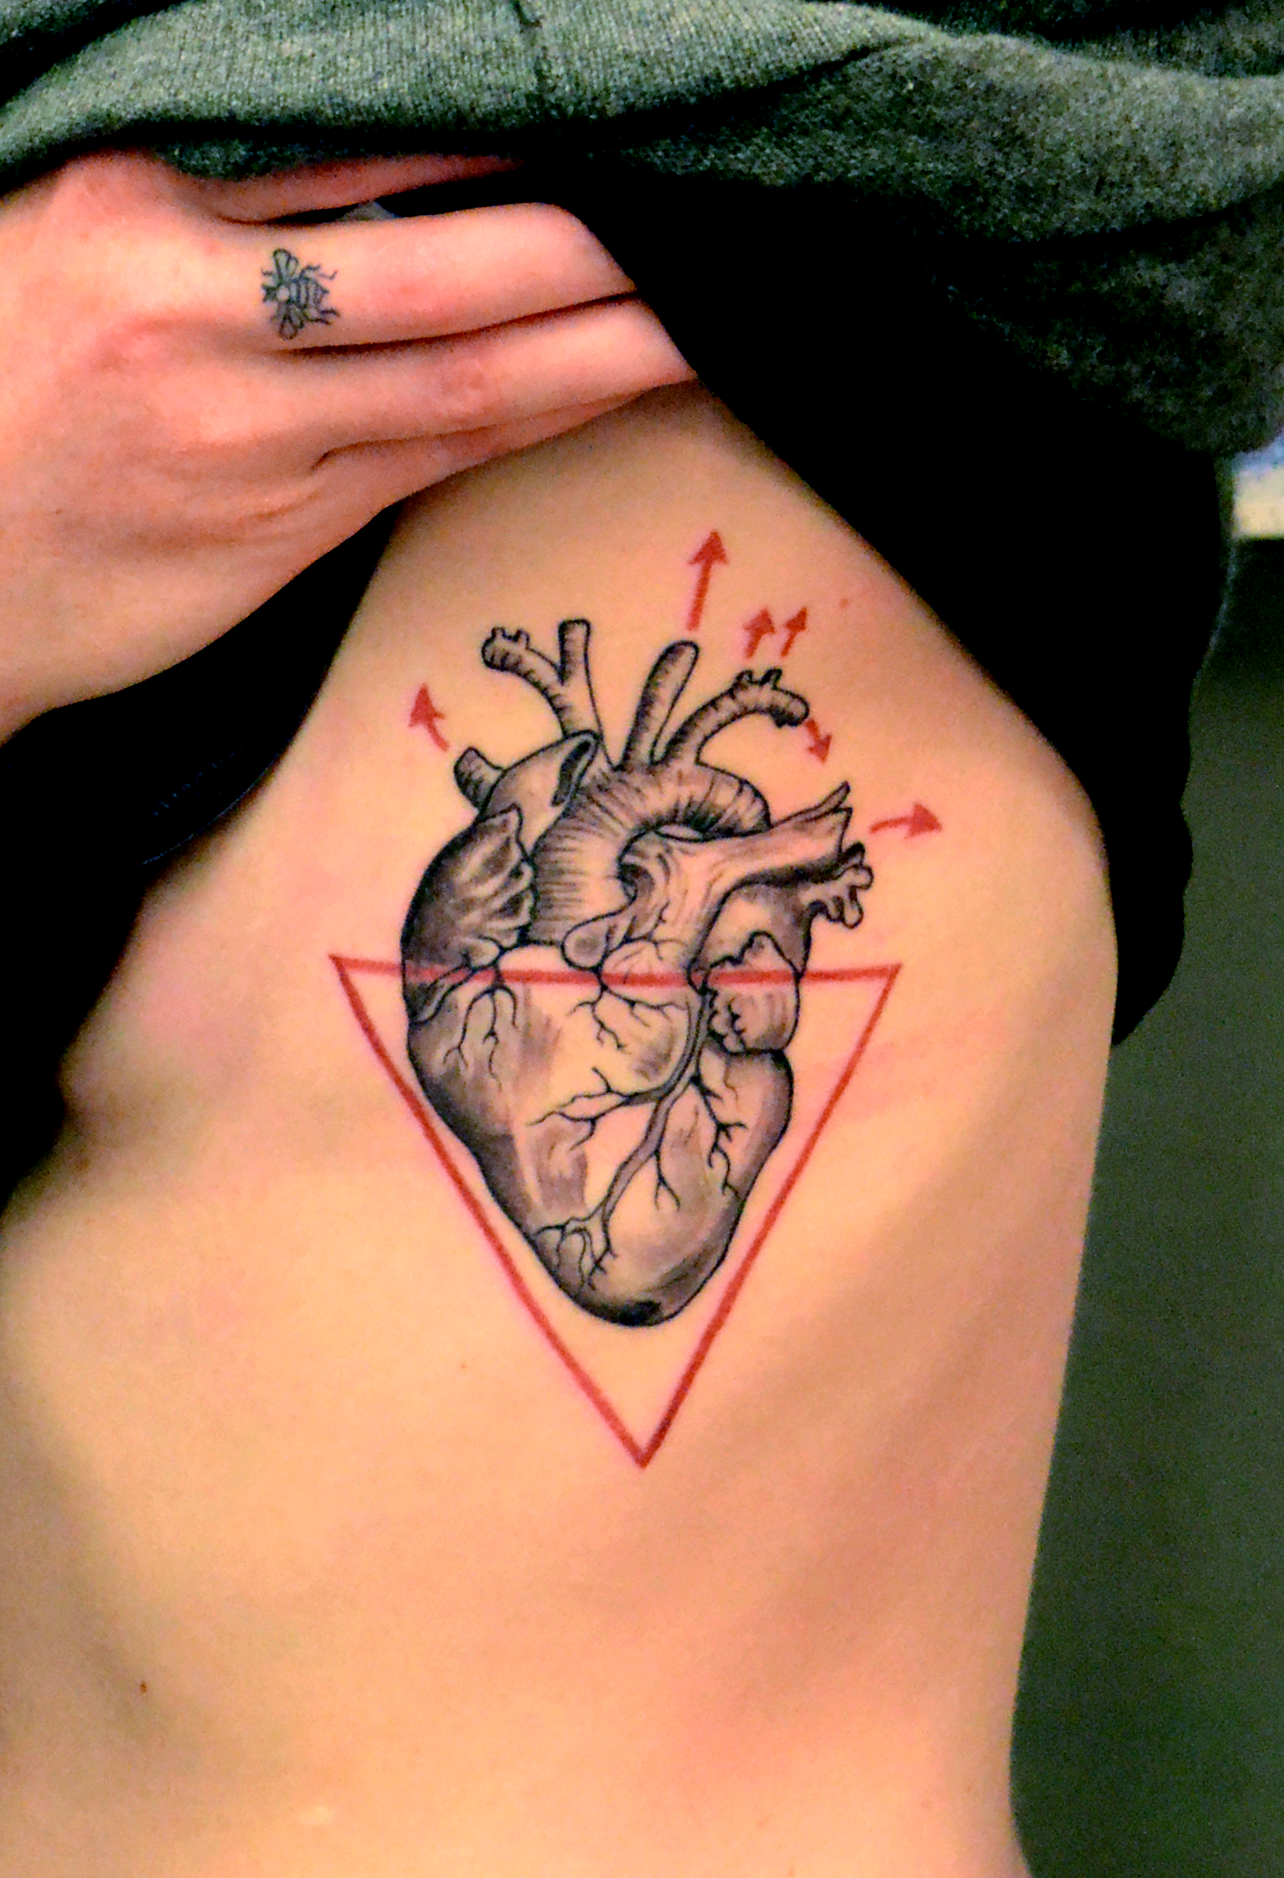 These are the 25 most artistic and original heart tattoos